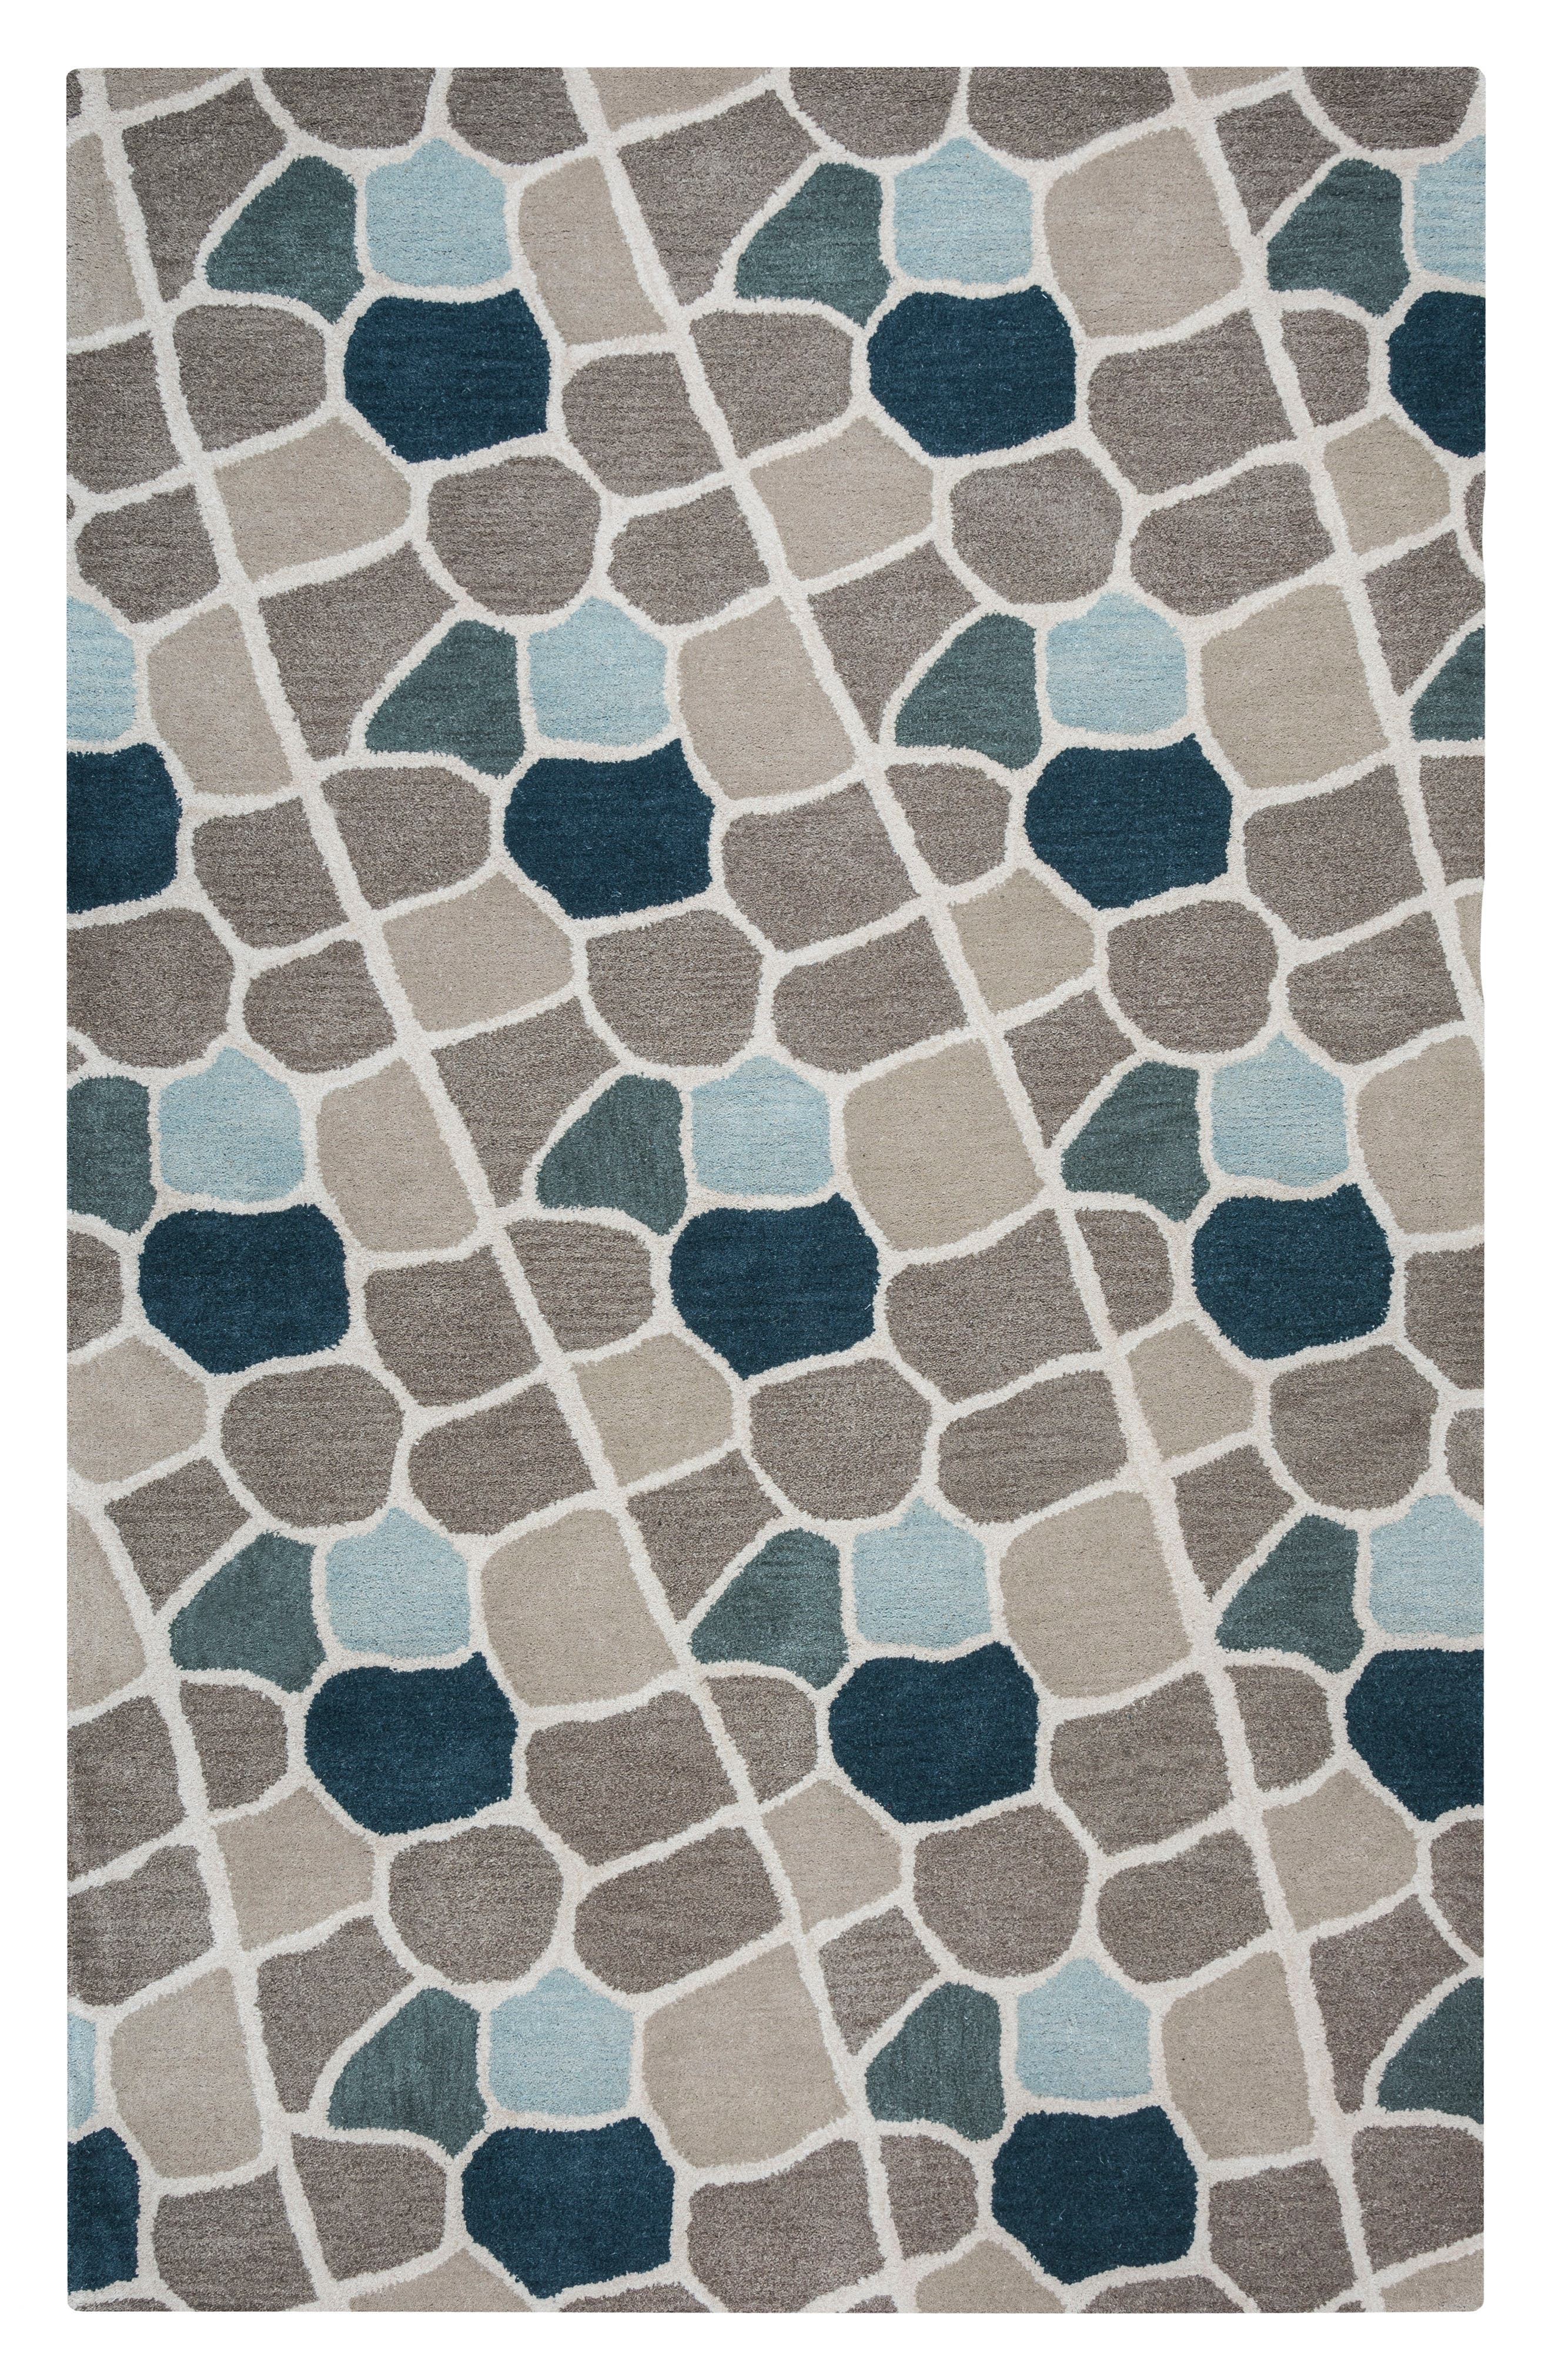 Cobble Geo Hand Tufted Wool Area Rug,                             Main thumbnail 1, color,                             Grey/ Blue